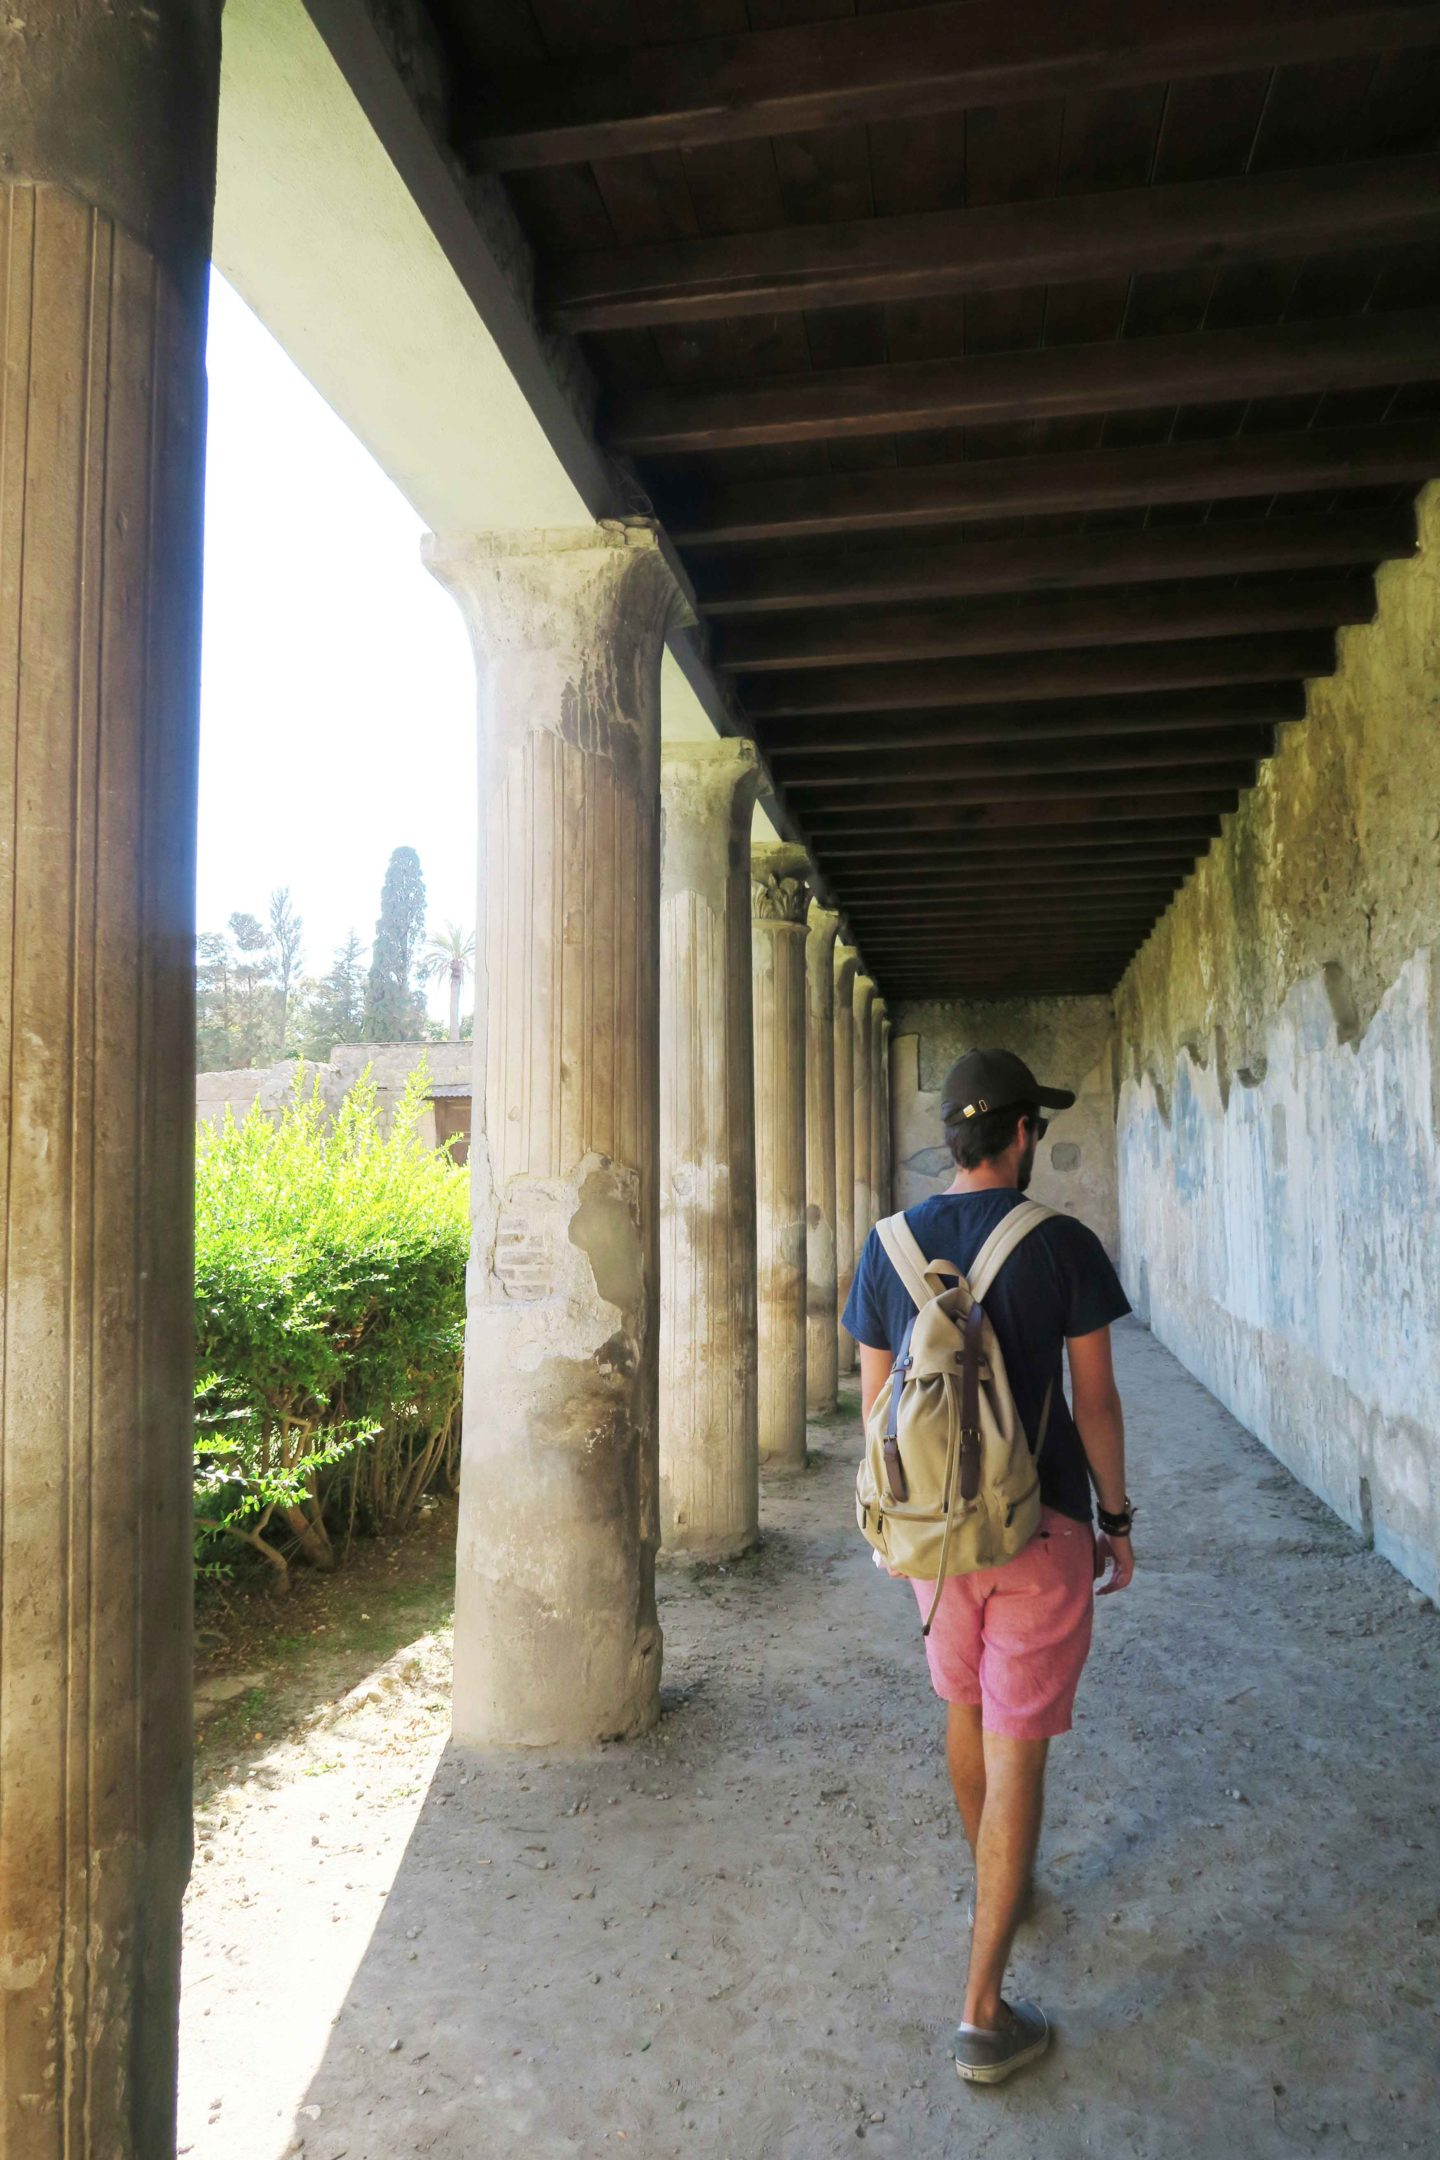 Sam Gill walking in ruins at Herculaneum archeological site in italy